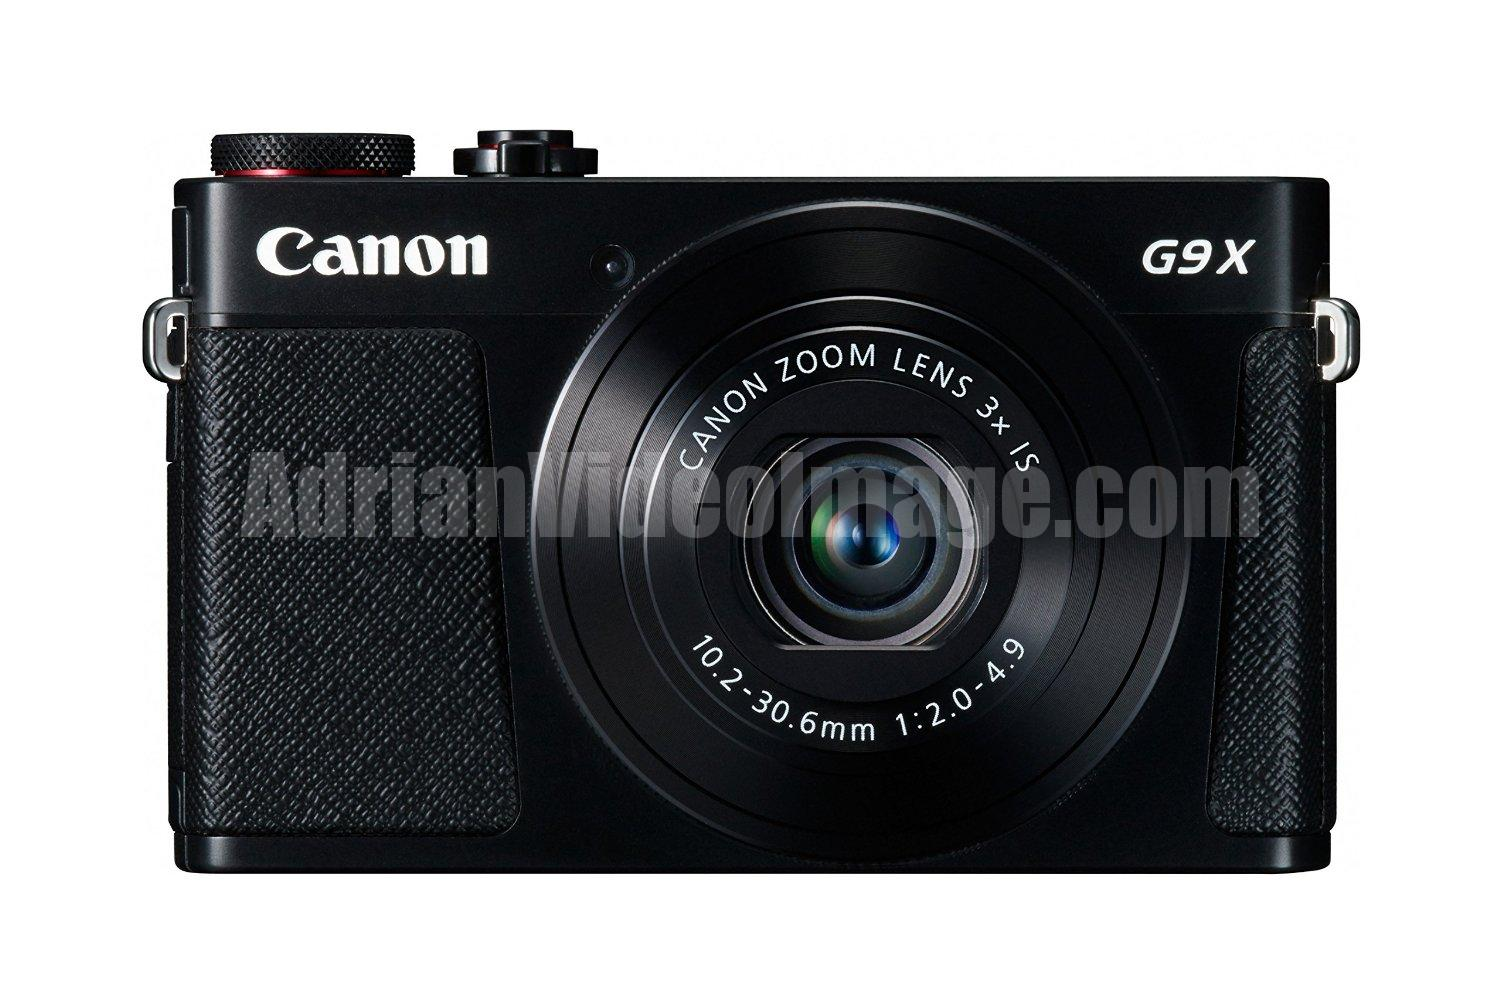 New canon digital camera models 2015 price g9x g5x eos for New camera 2015